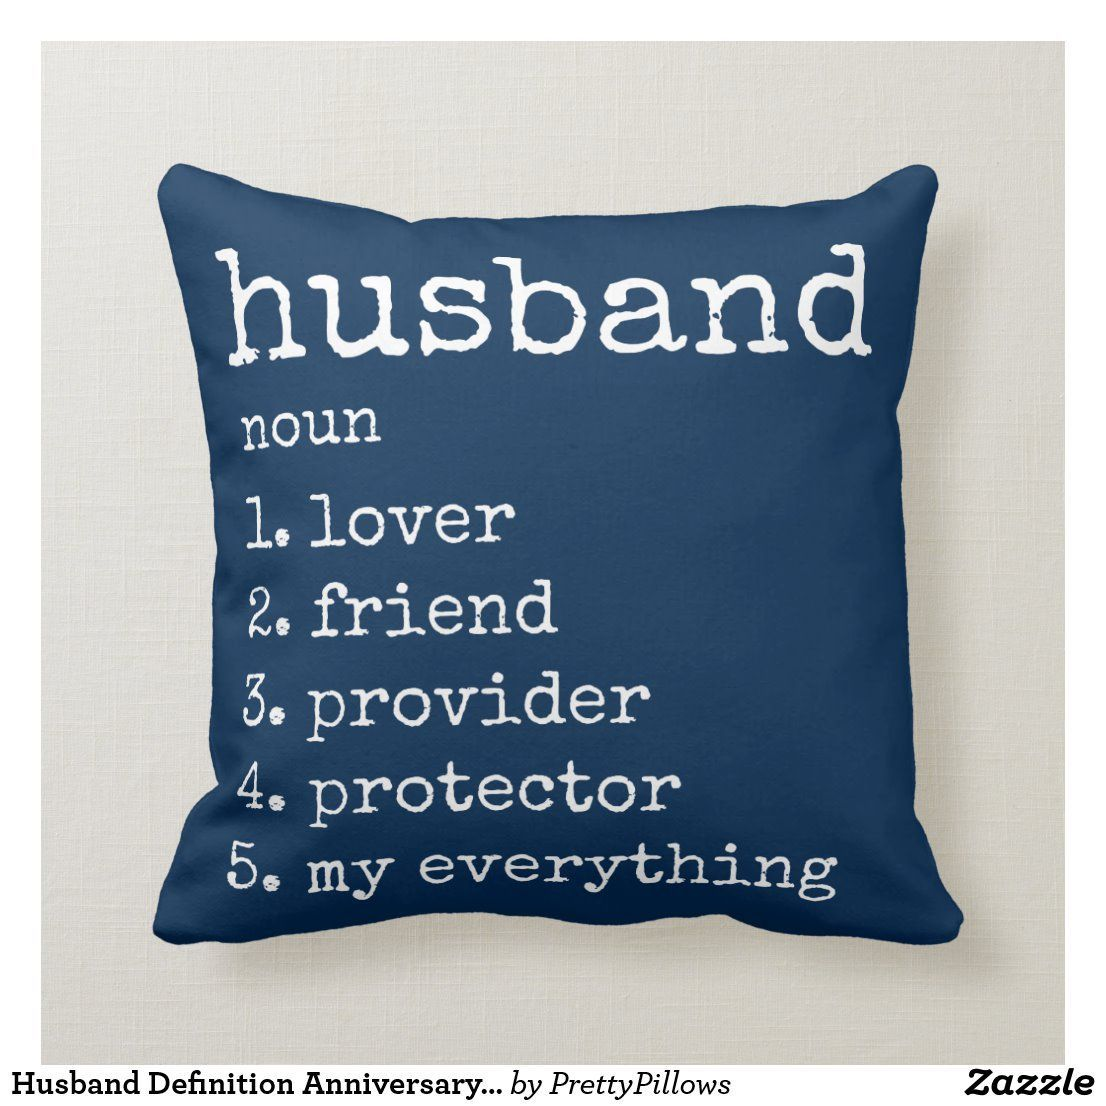 Husband Definition Anniversary Gift Pillow | Zazzle.com